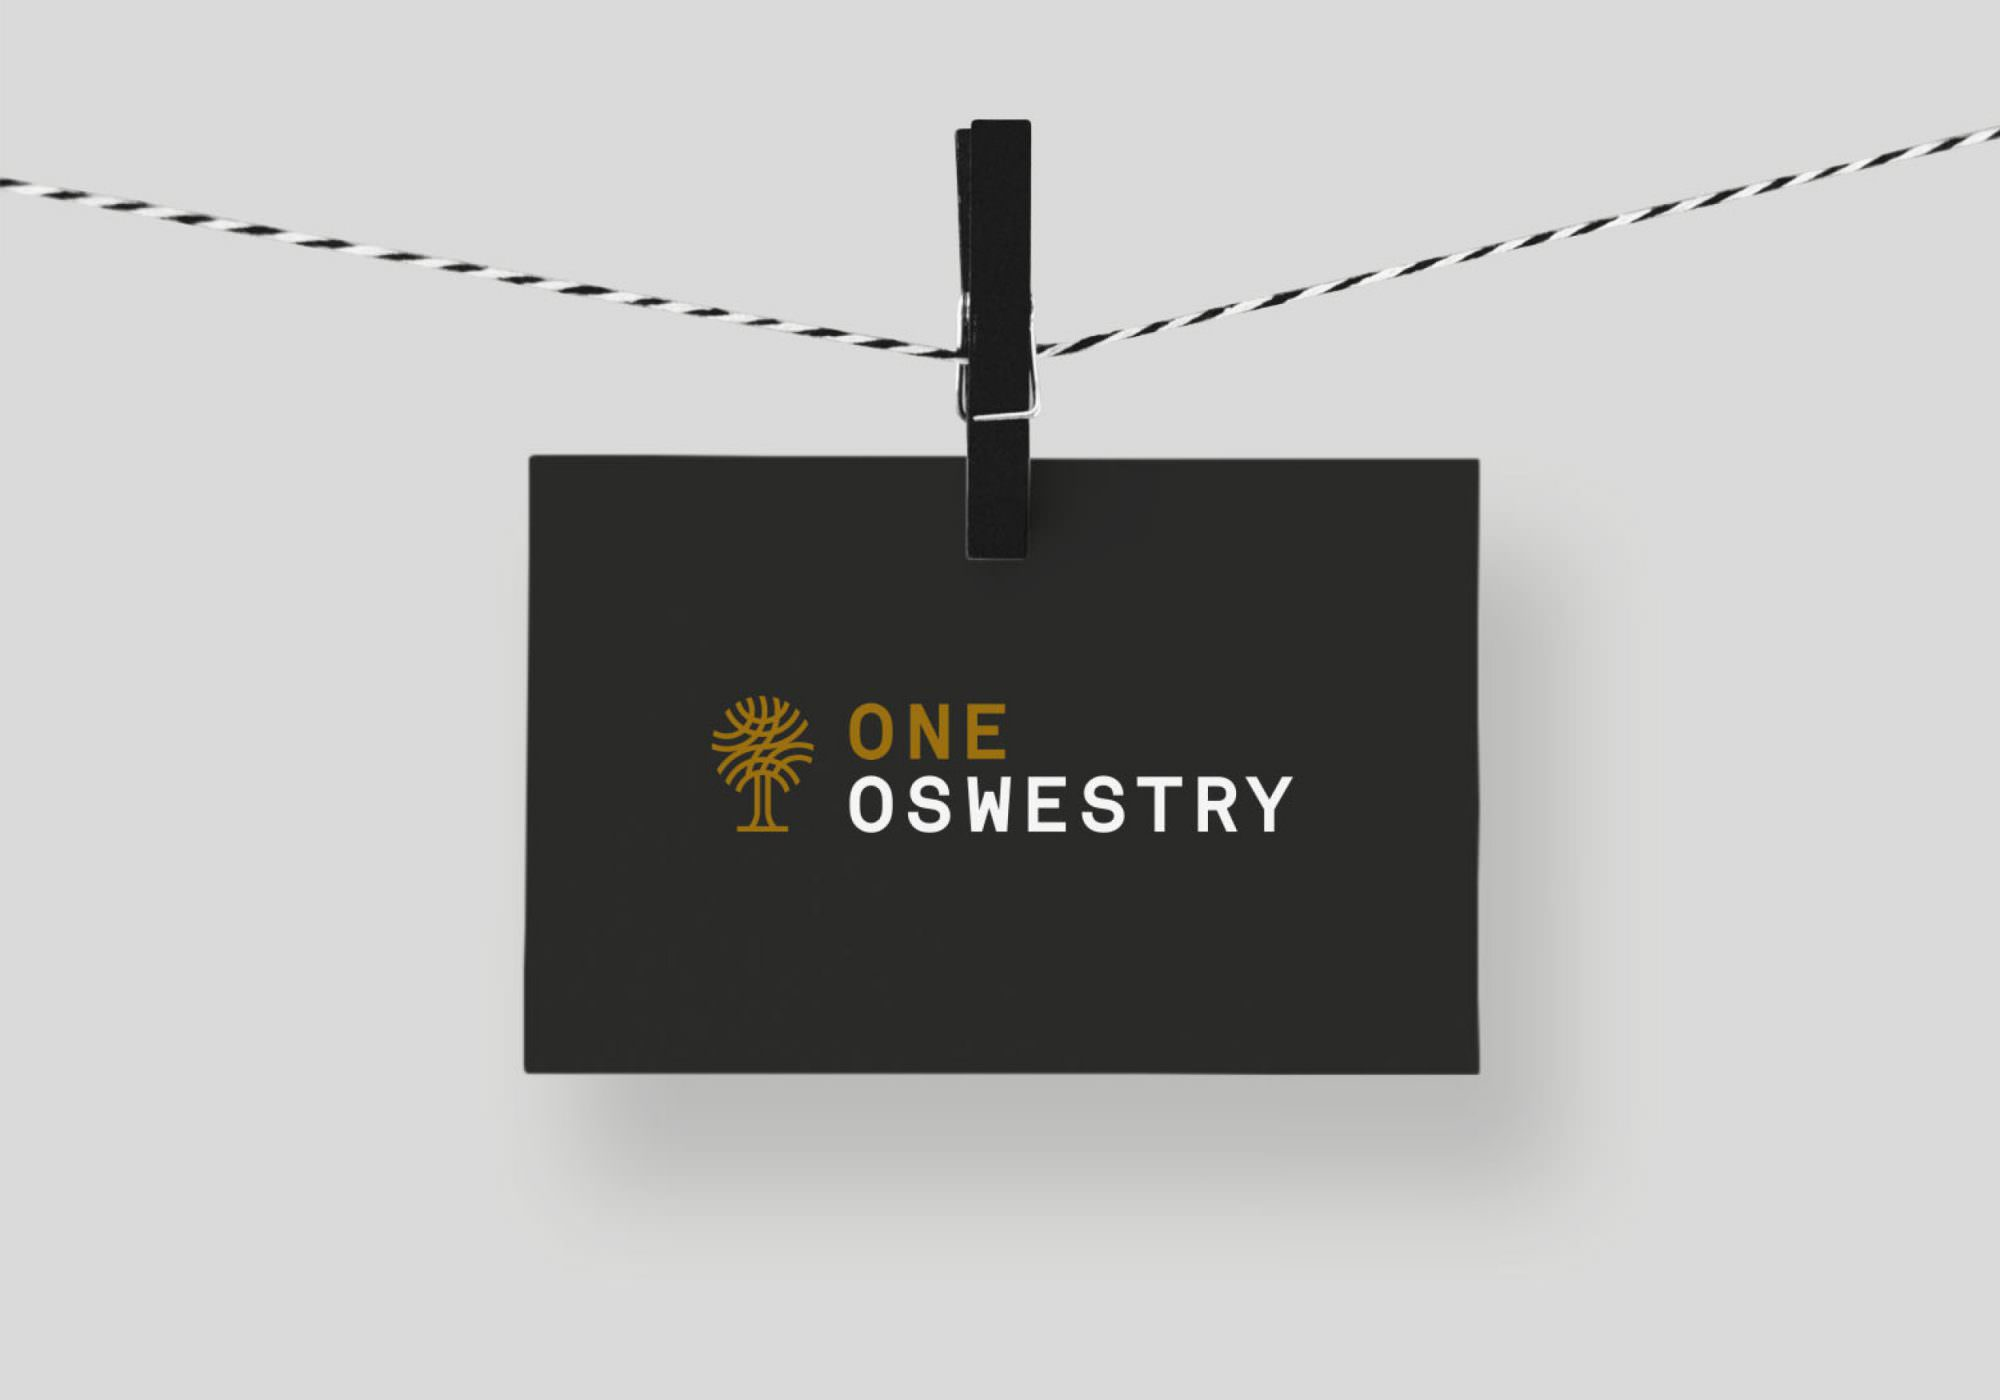 One Oswestry - Web Design, Stationery & Photography In Shropshire